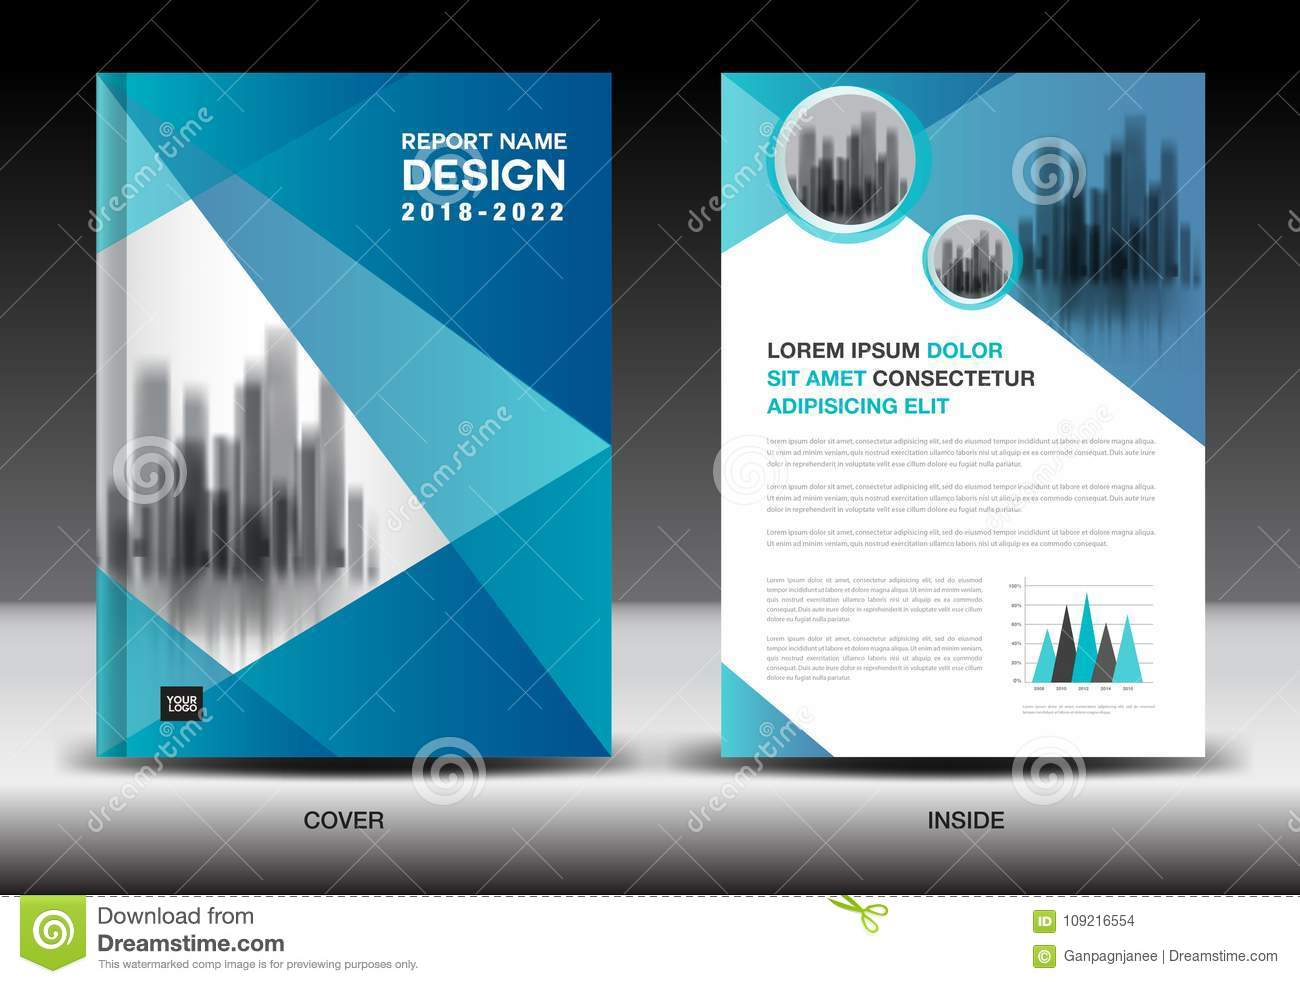 Business Ad Template from thumbs.dreamstime.com